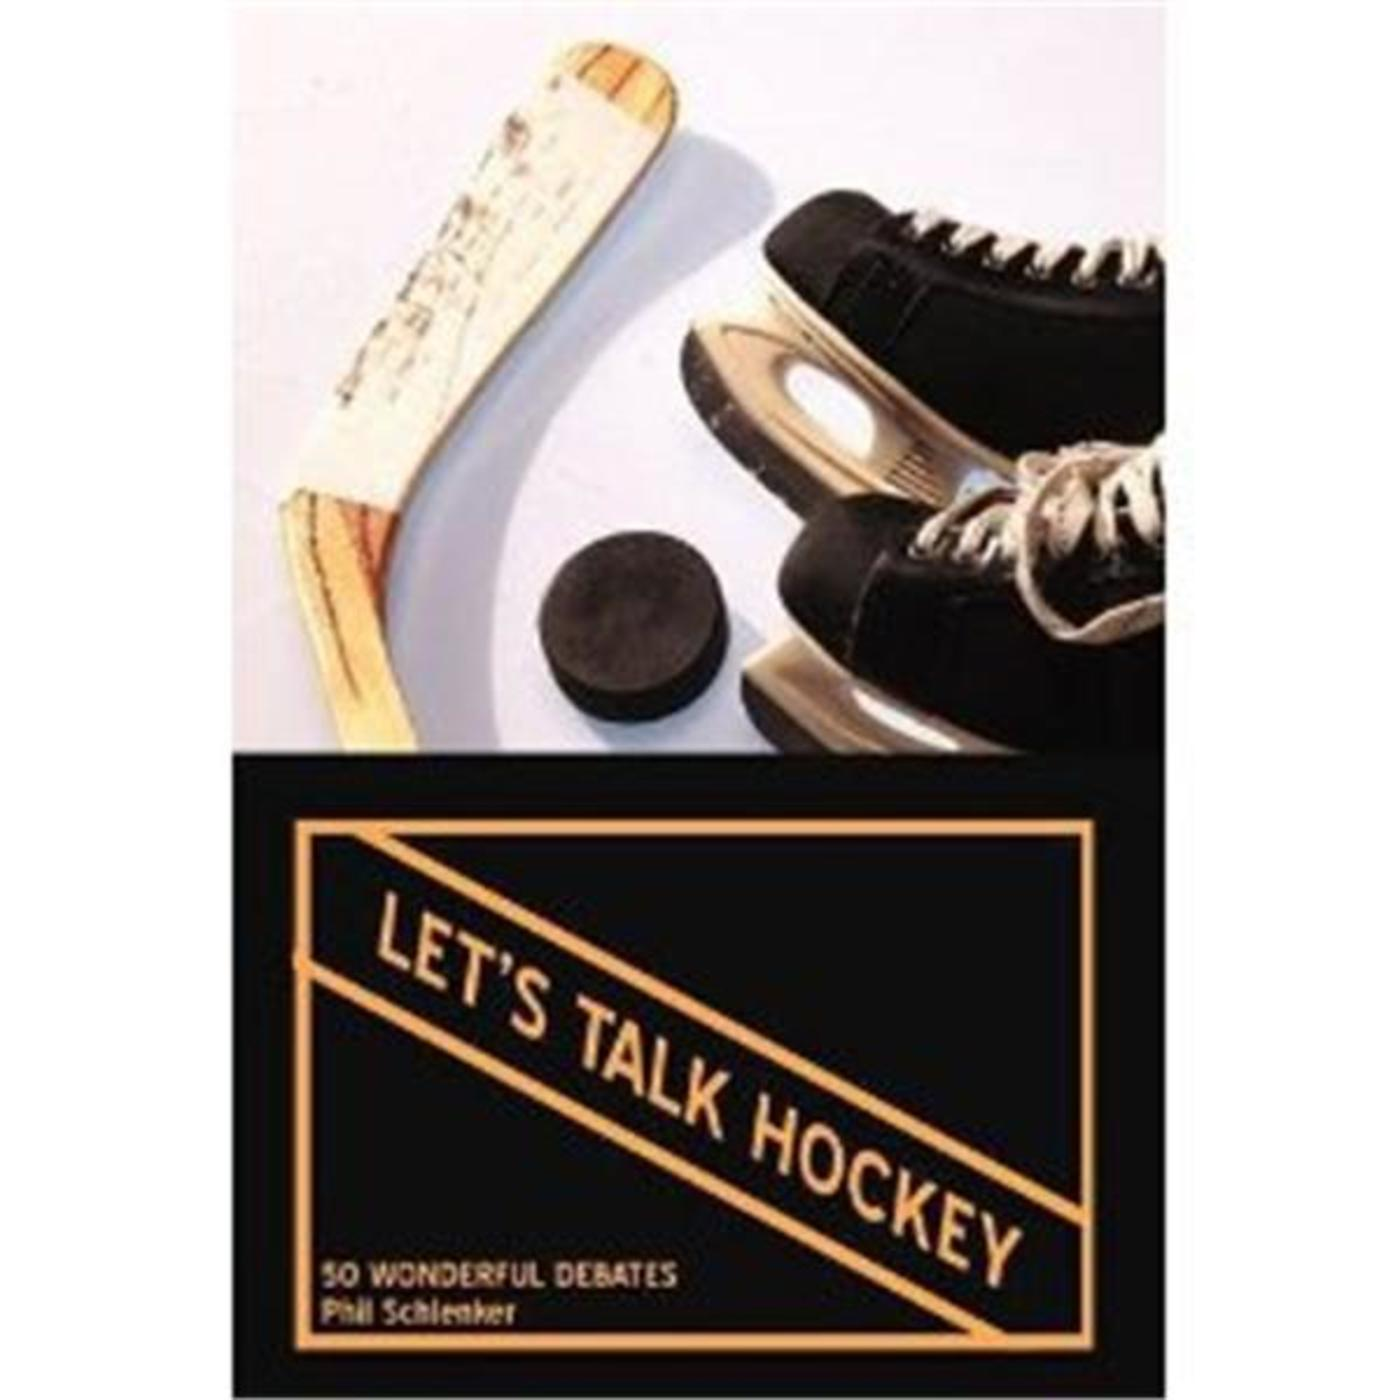 Ben and Stephen Talk Hockey